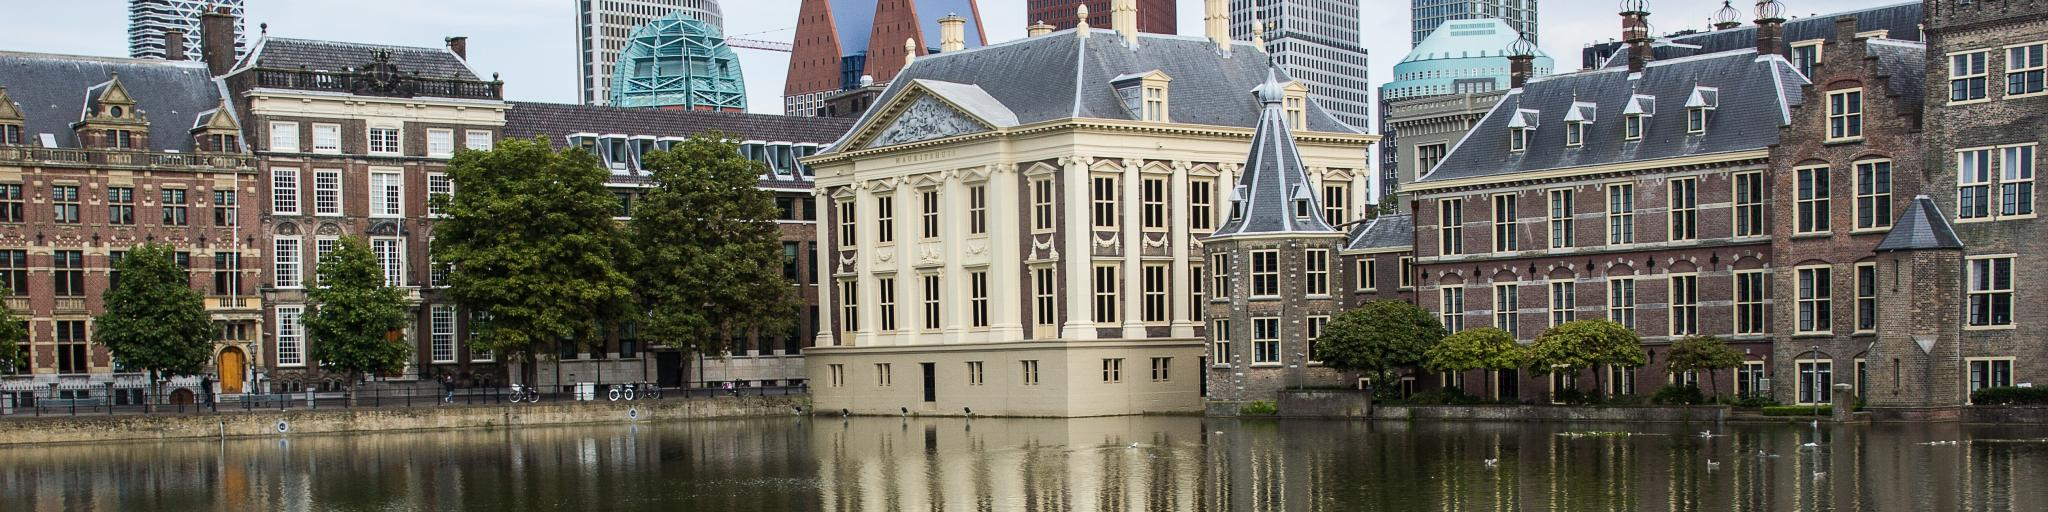 Old and new buildings reflect on the water in the Hague, Holland